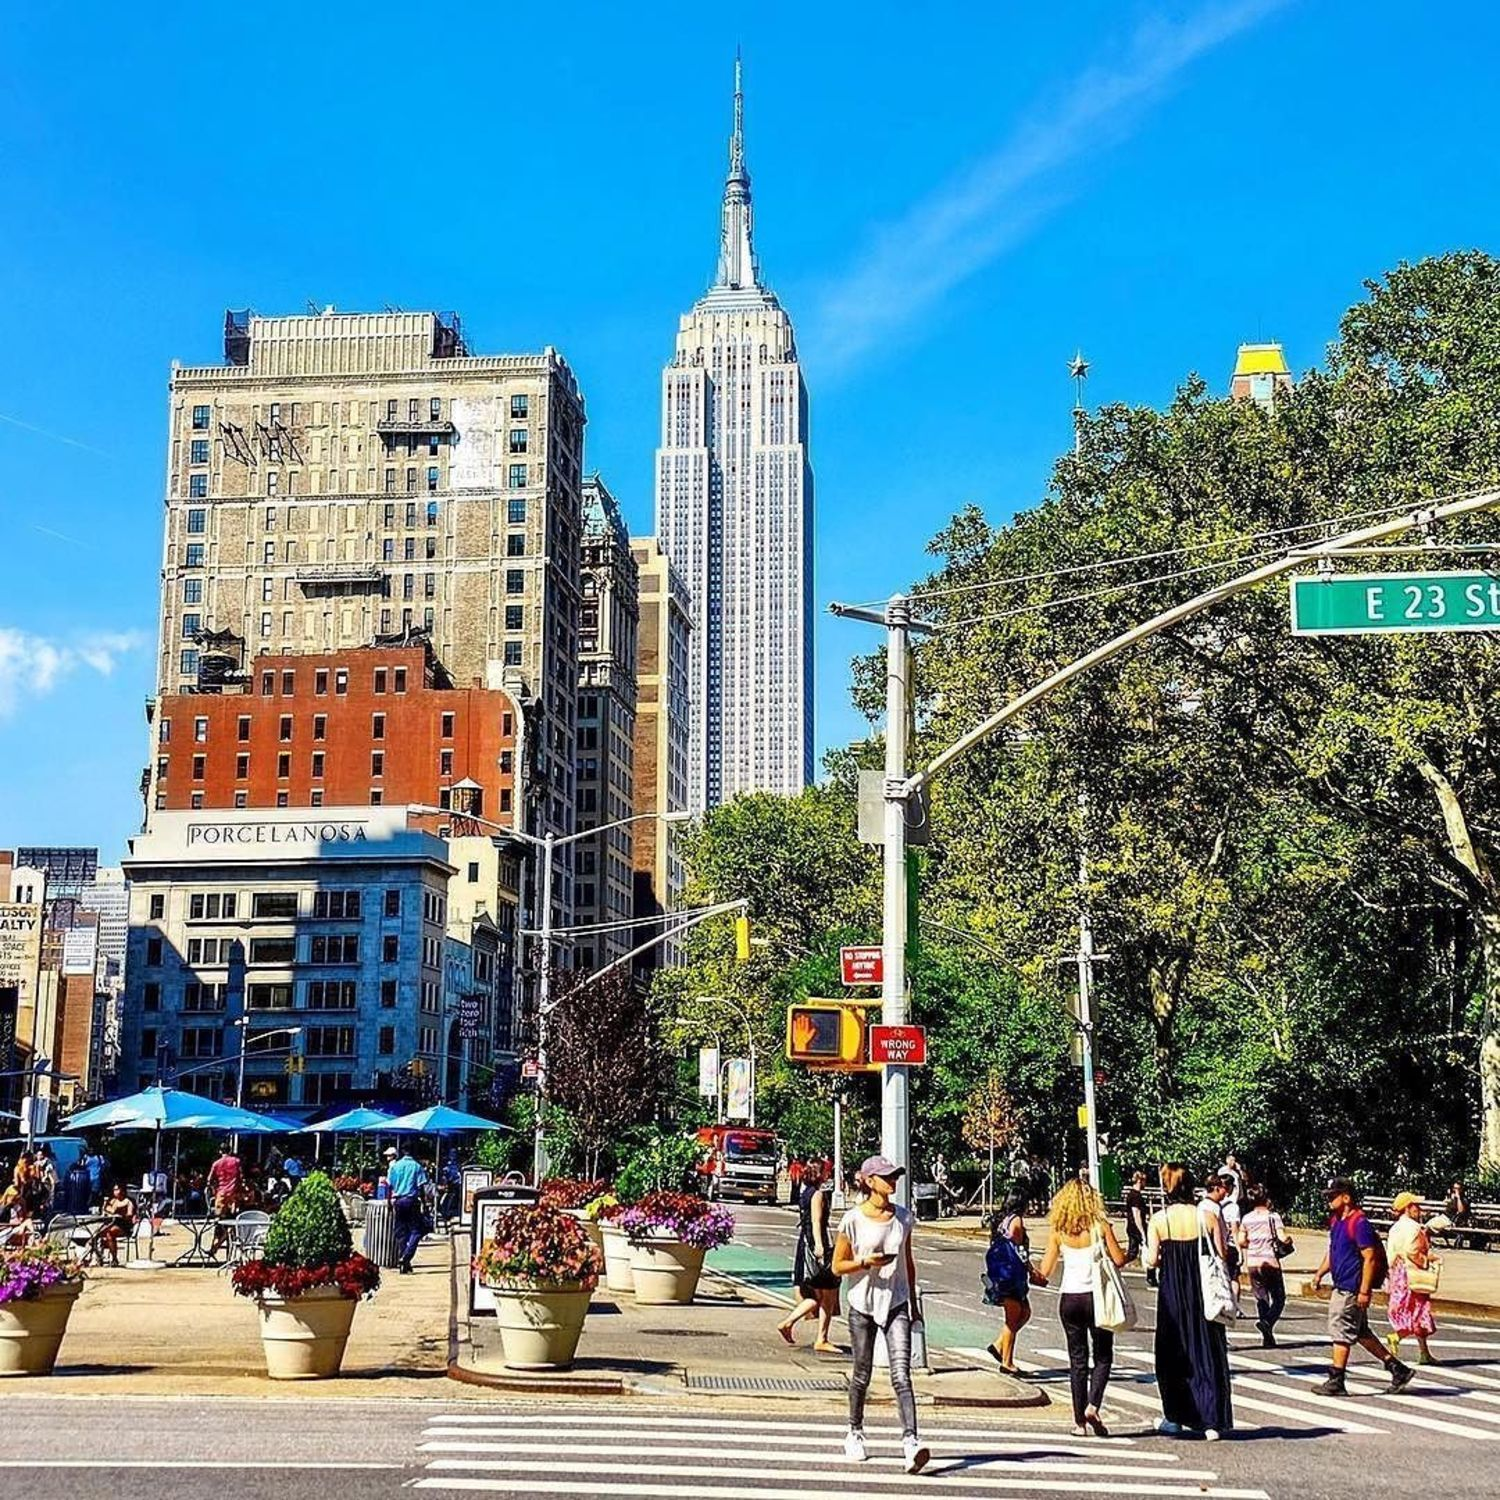 Flatiron Plaza, New York, New York. Photo via @nyc_russ #viewingnyc #newyorkcity #newyork